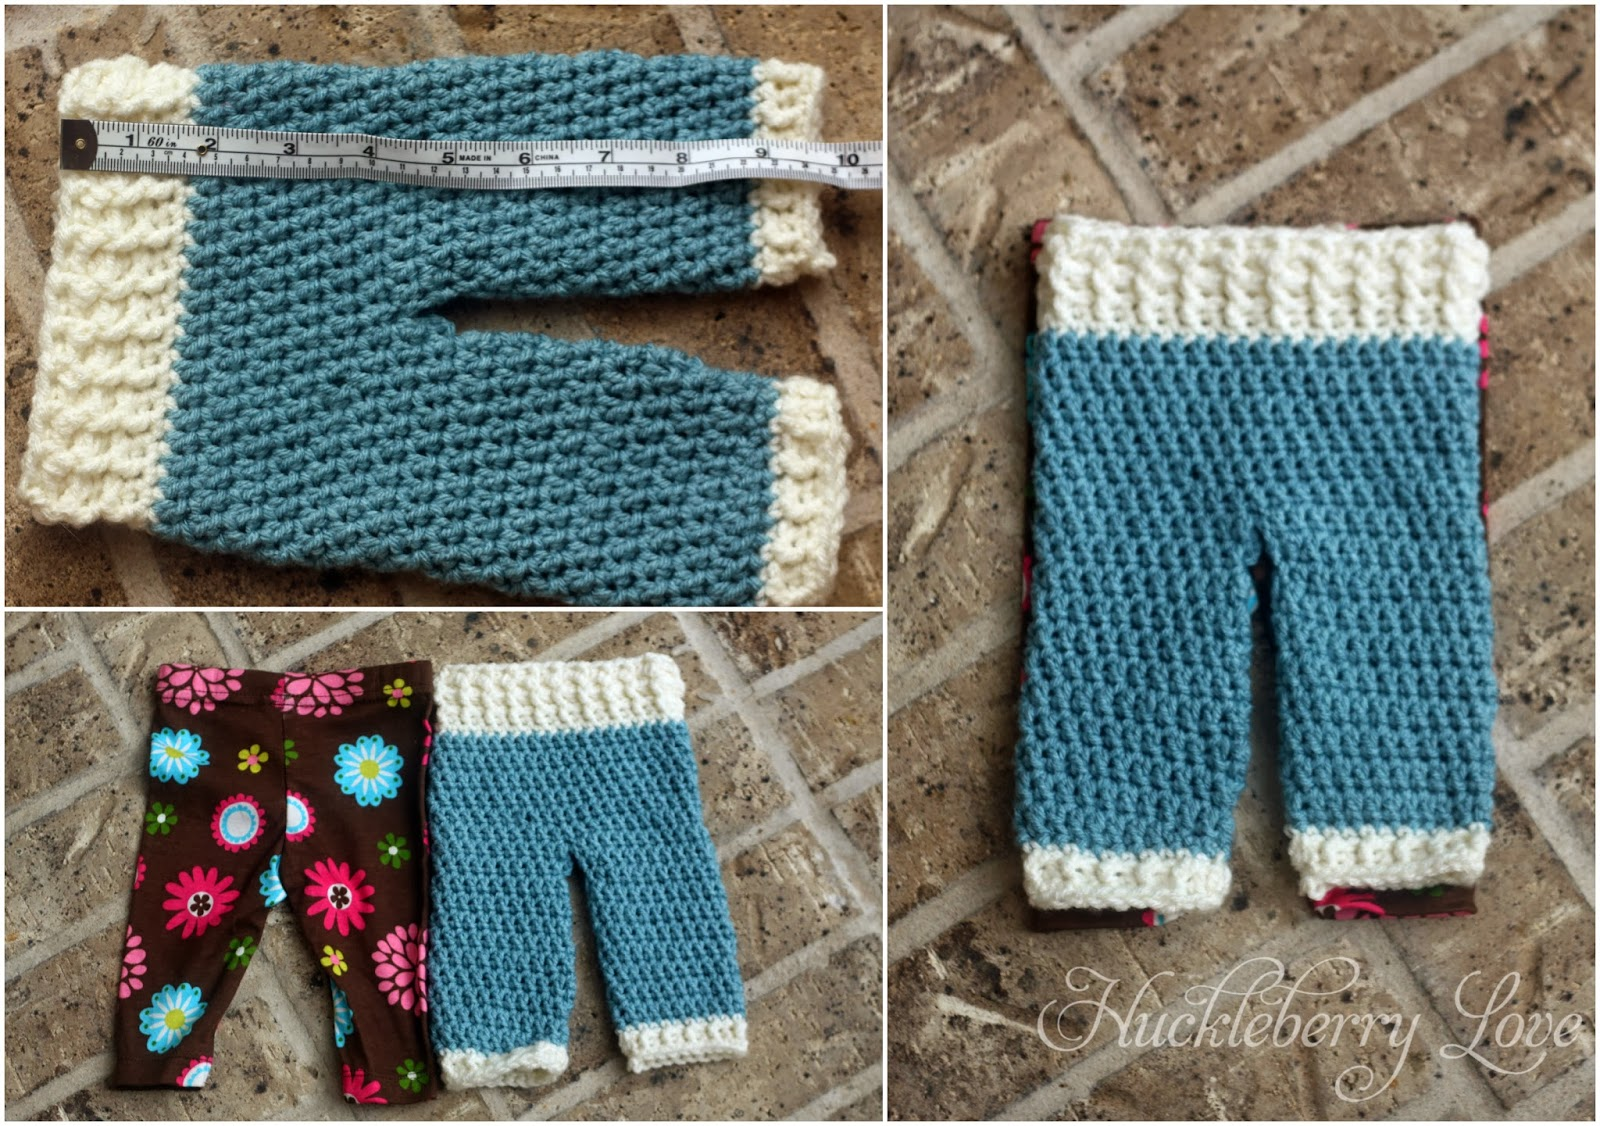 Huckleberry Love Crochet Newborn Pants